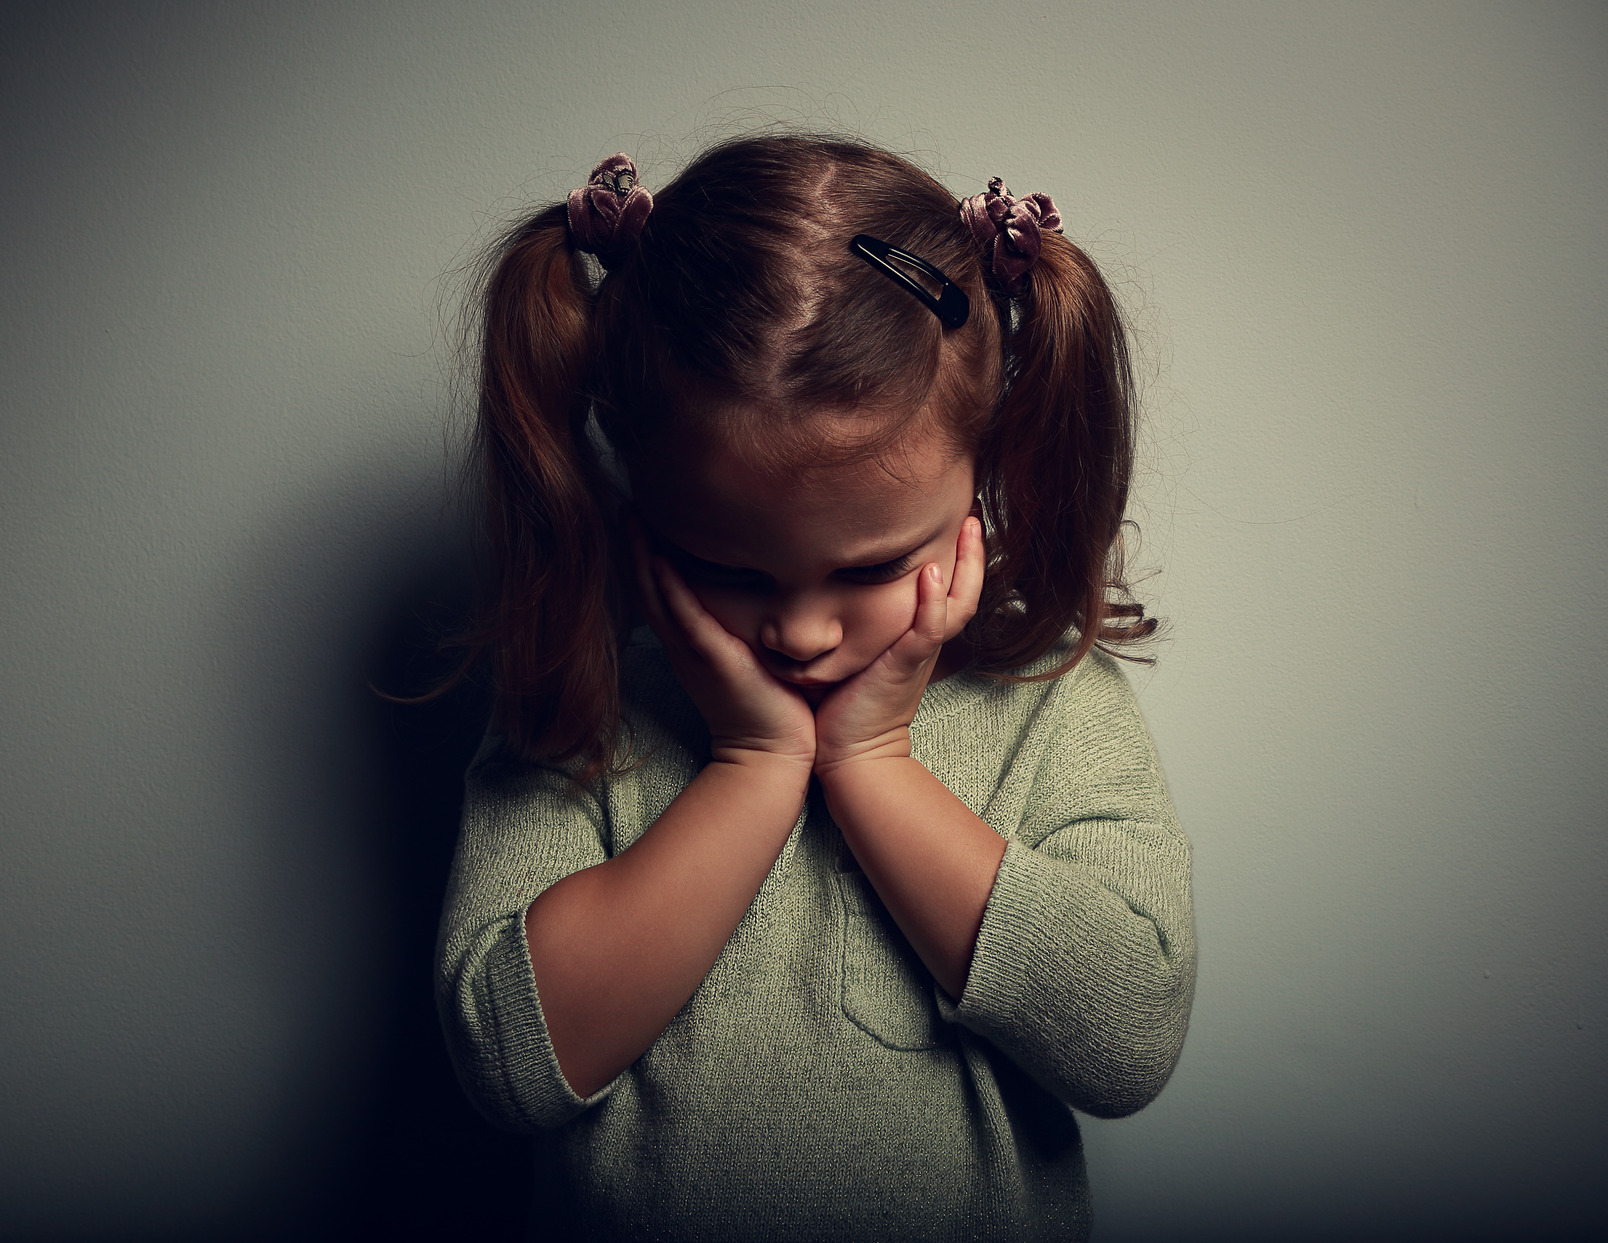 photodune-10722429-sad-crying-alone-kid-girl-on-dark-background-m.jpg